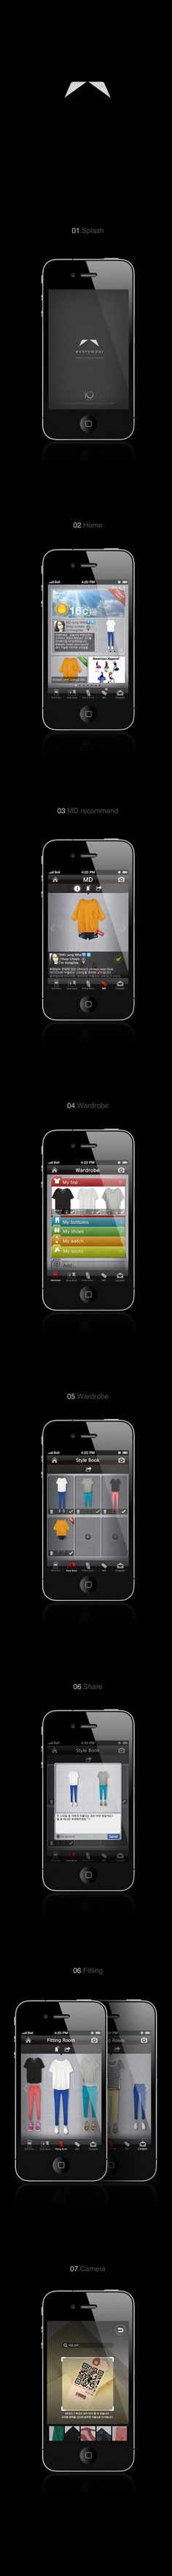 iOS Application everywear by kwang kuk Kim, via Behance